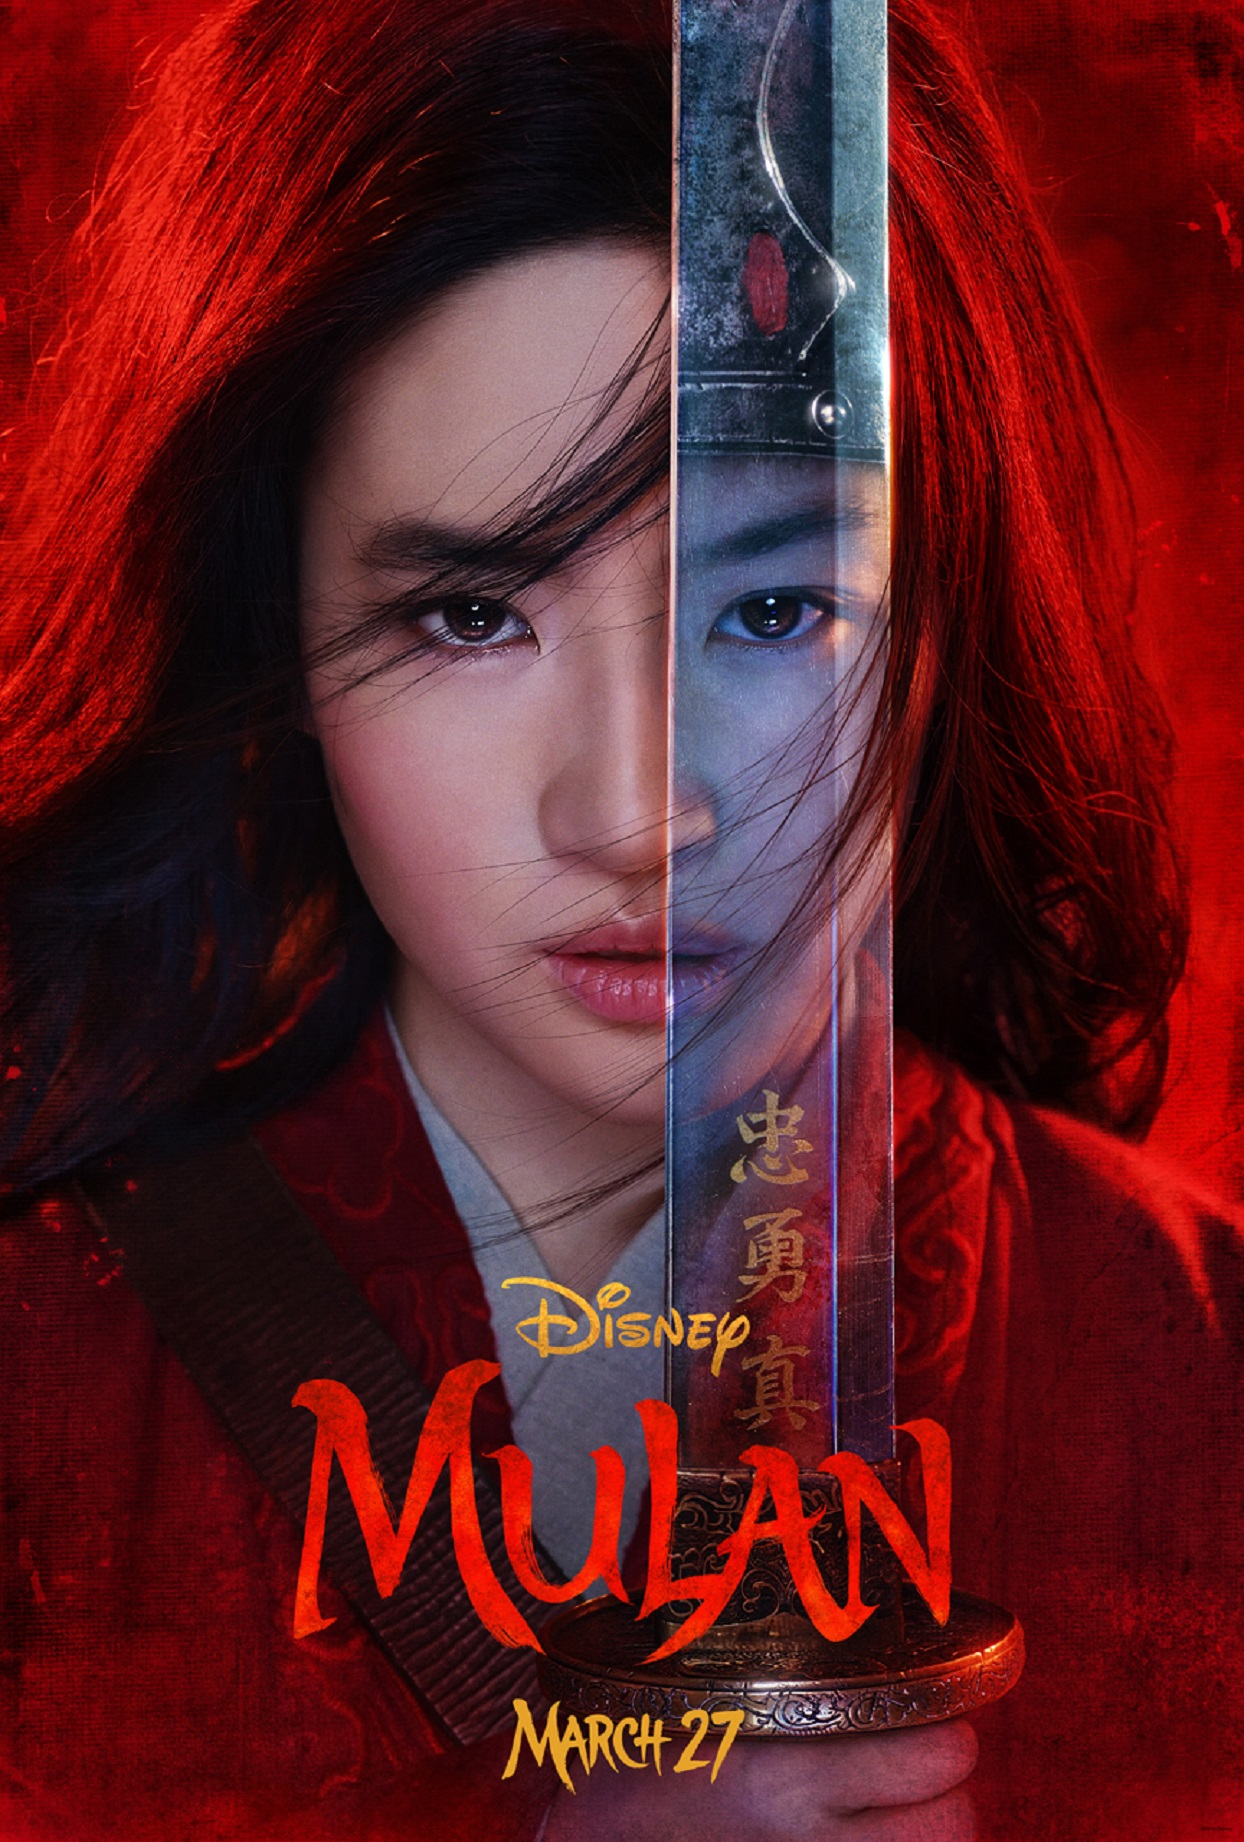 Disney Mulan Live Action Movie Poster